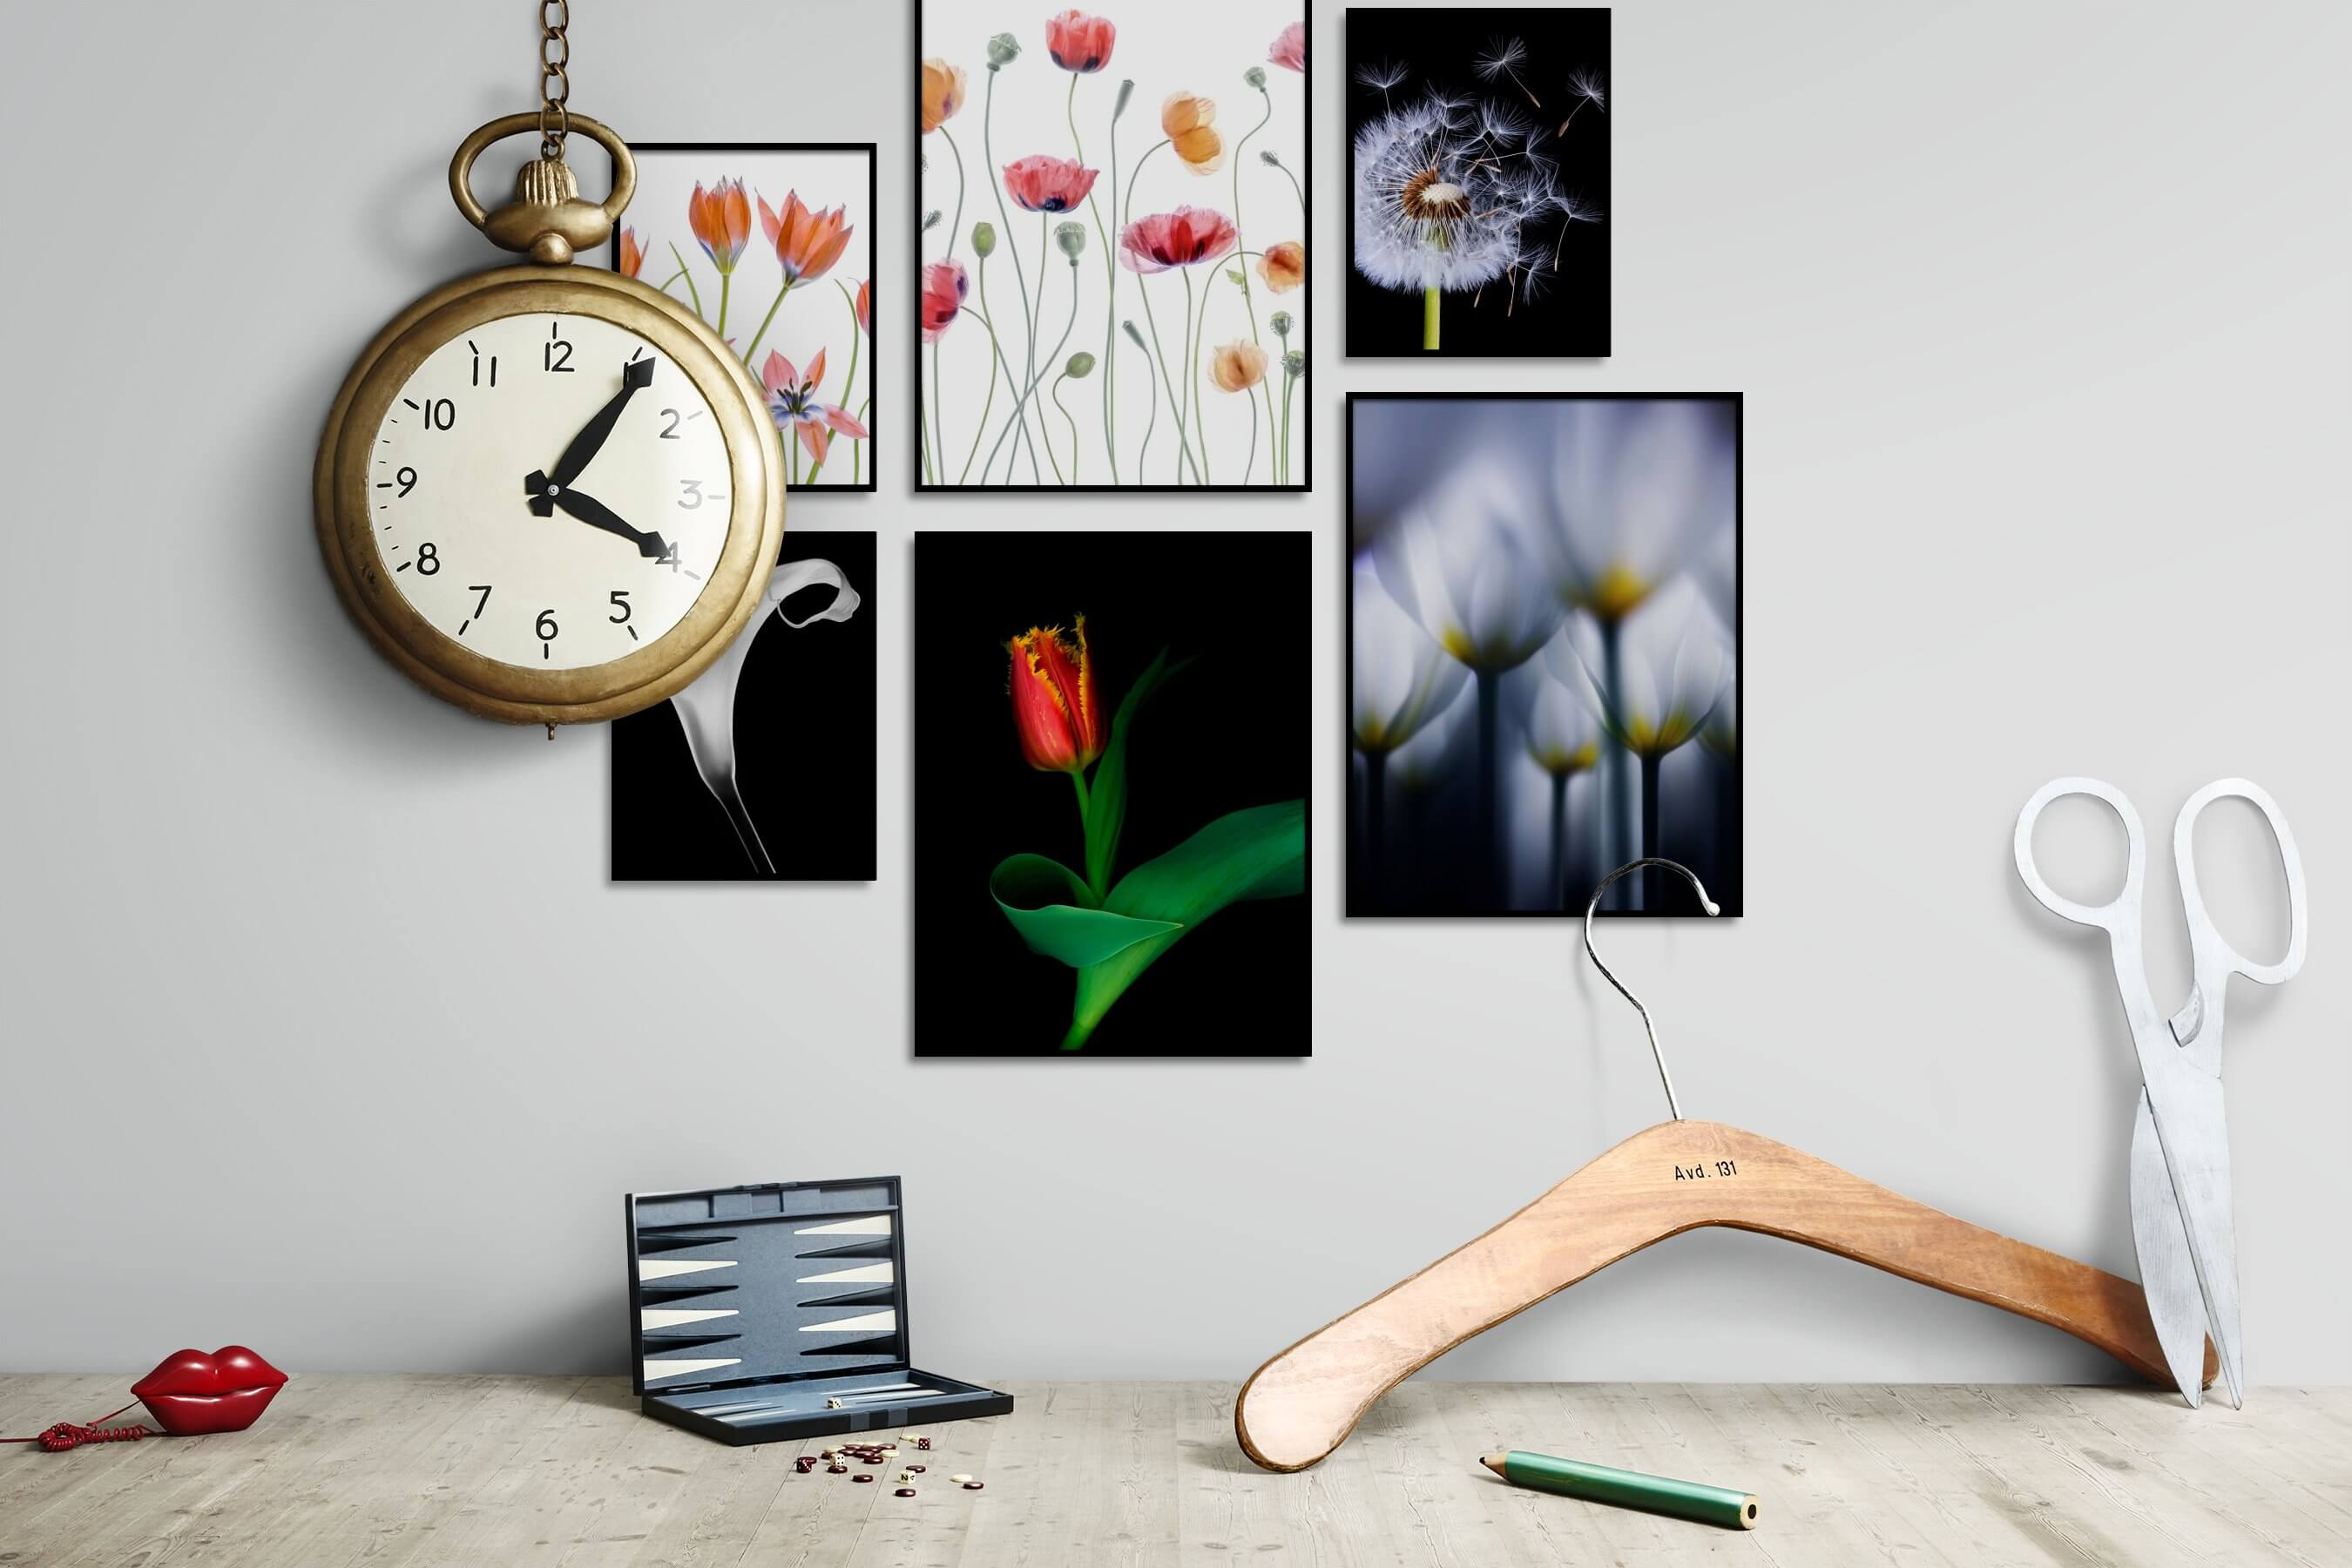 Gallery wall idea with six framed pictures arranged on a wall depicting Bright Tones, Flowers & Plants, Black & White, Dark Tones, For the Minimalist, Mindfulness, and For the Moderate